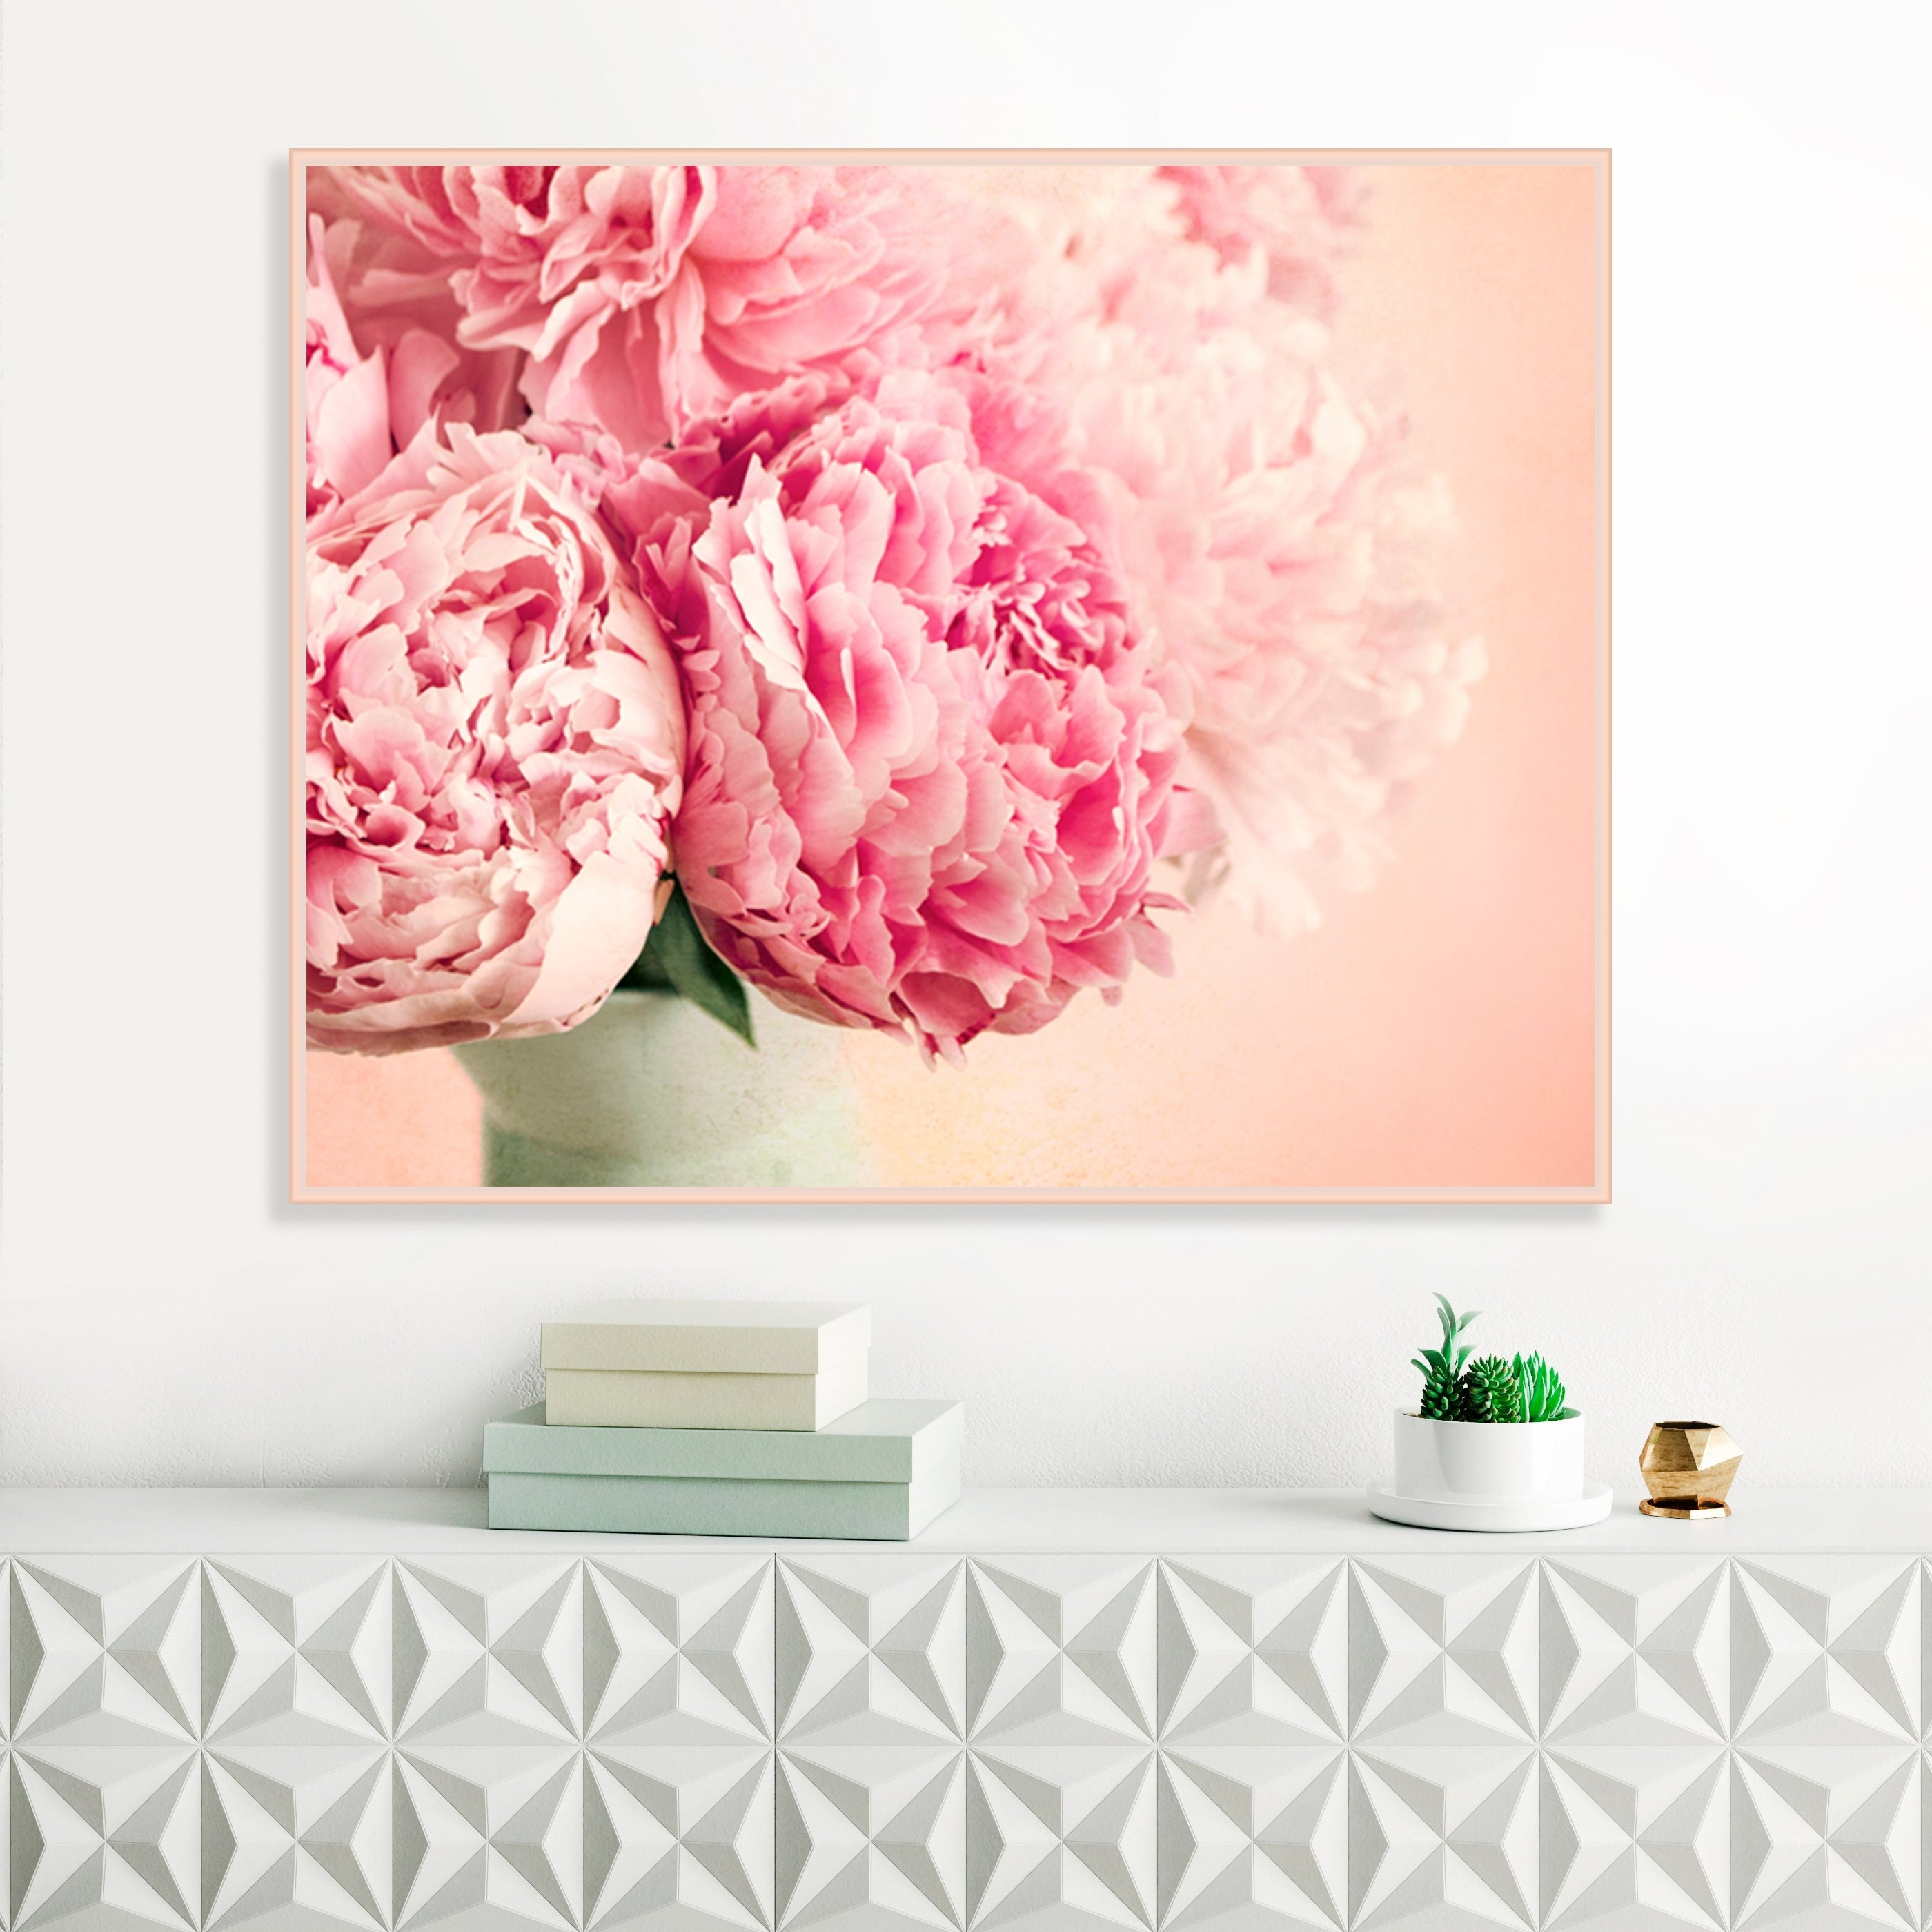 Famous Pink Wall Art With Regard To Pink Peonies, Flower Prints, Blush Pink Wall Art, Peonies Still Life (View 17 of 20)